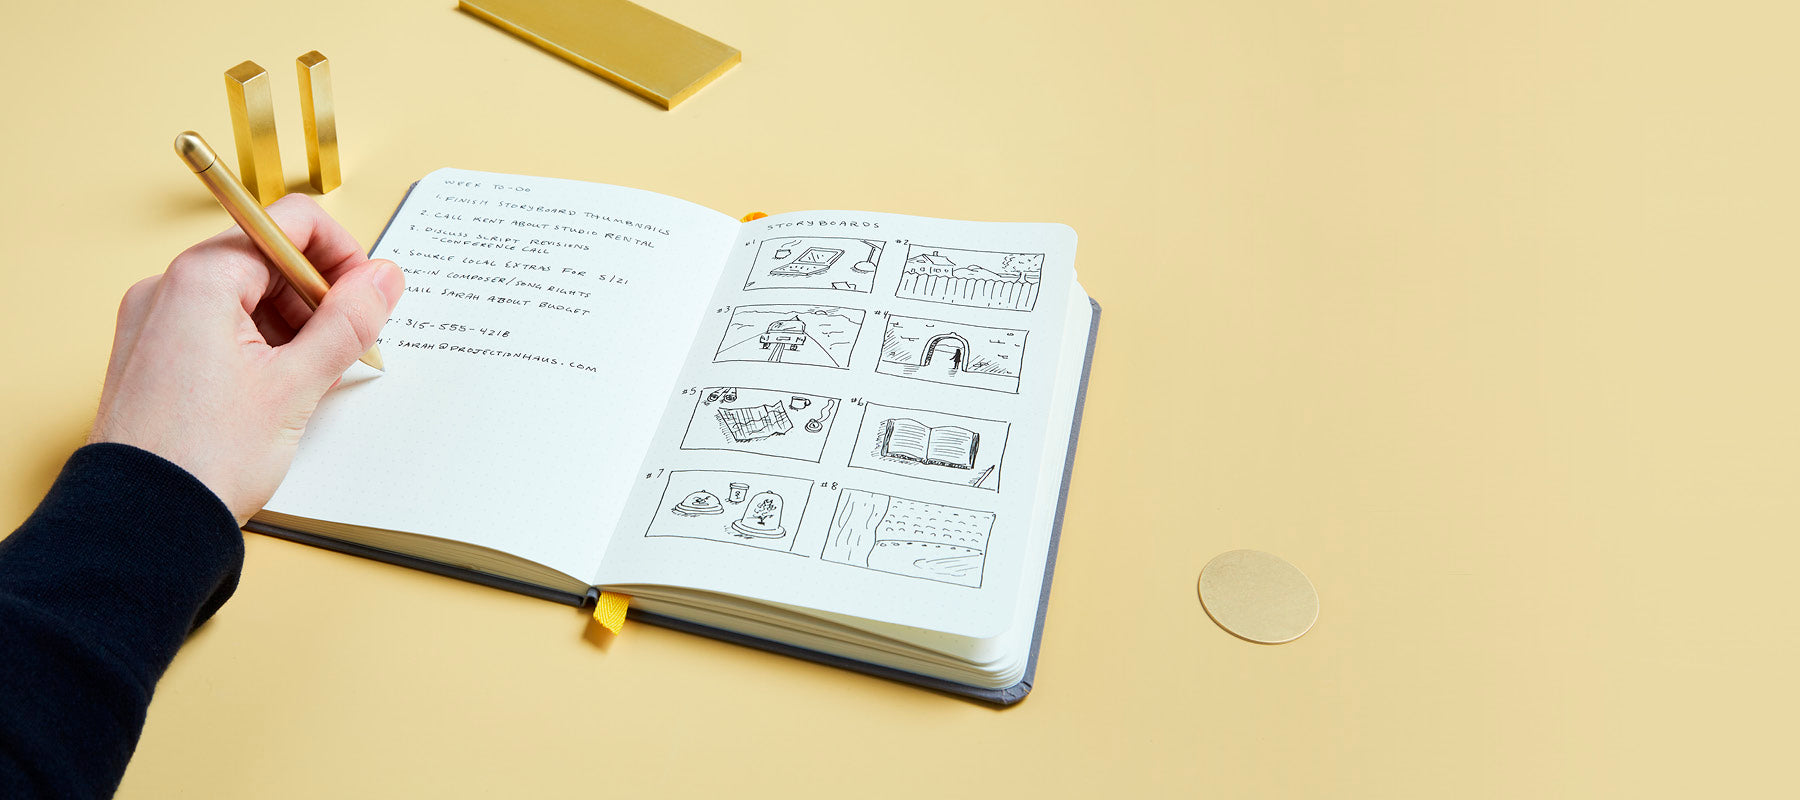 Squire brass pen drawing in confidant notebook.